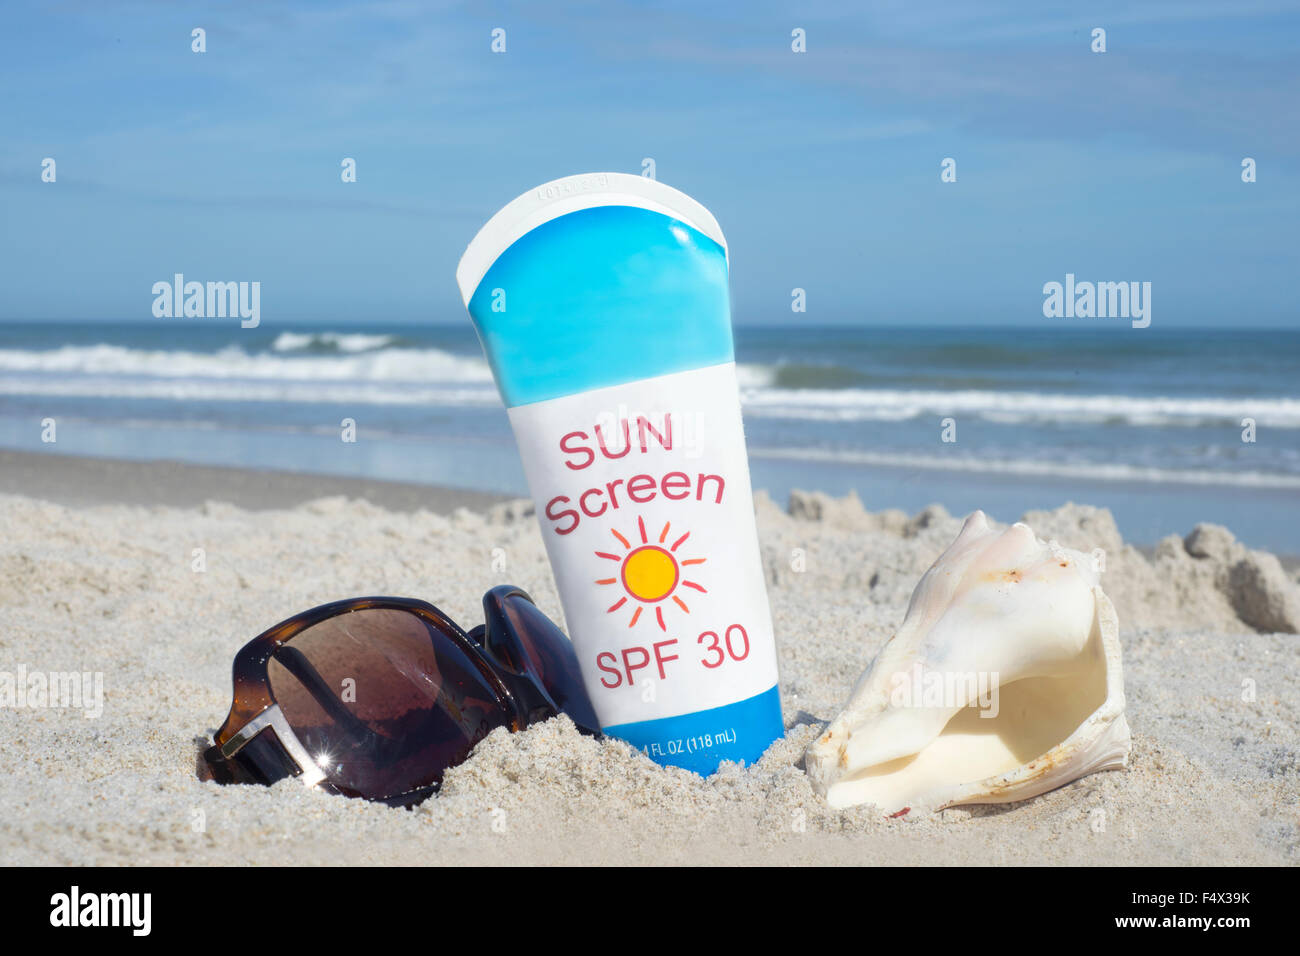 Bottle of sunscreen with shell and sunglasses on beach. - Stock Image